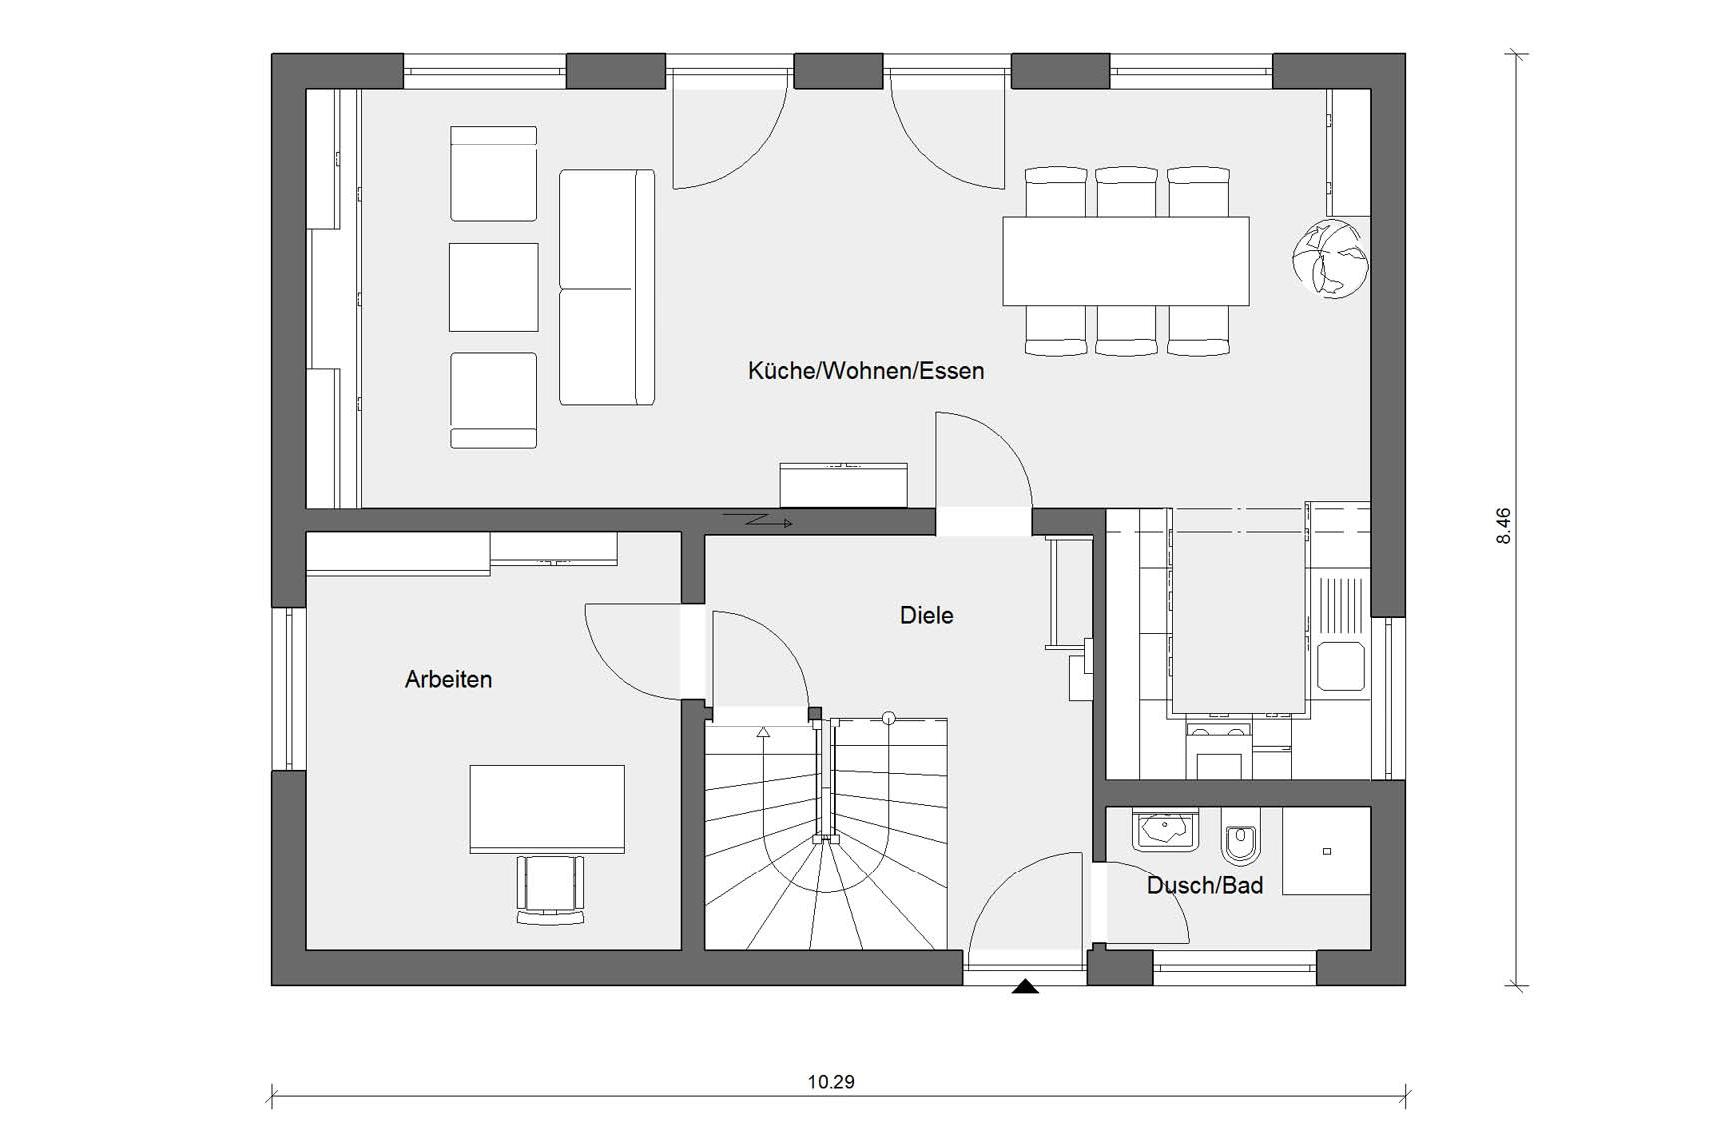 Floor plan ground floor E 15-143.15 House with flat roof dormer